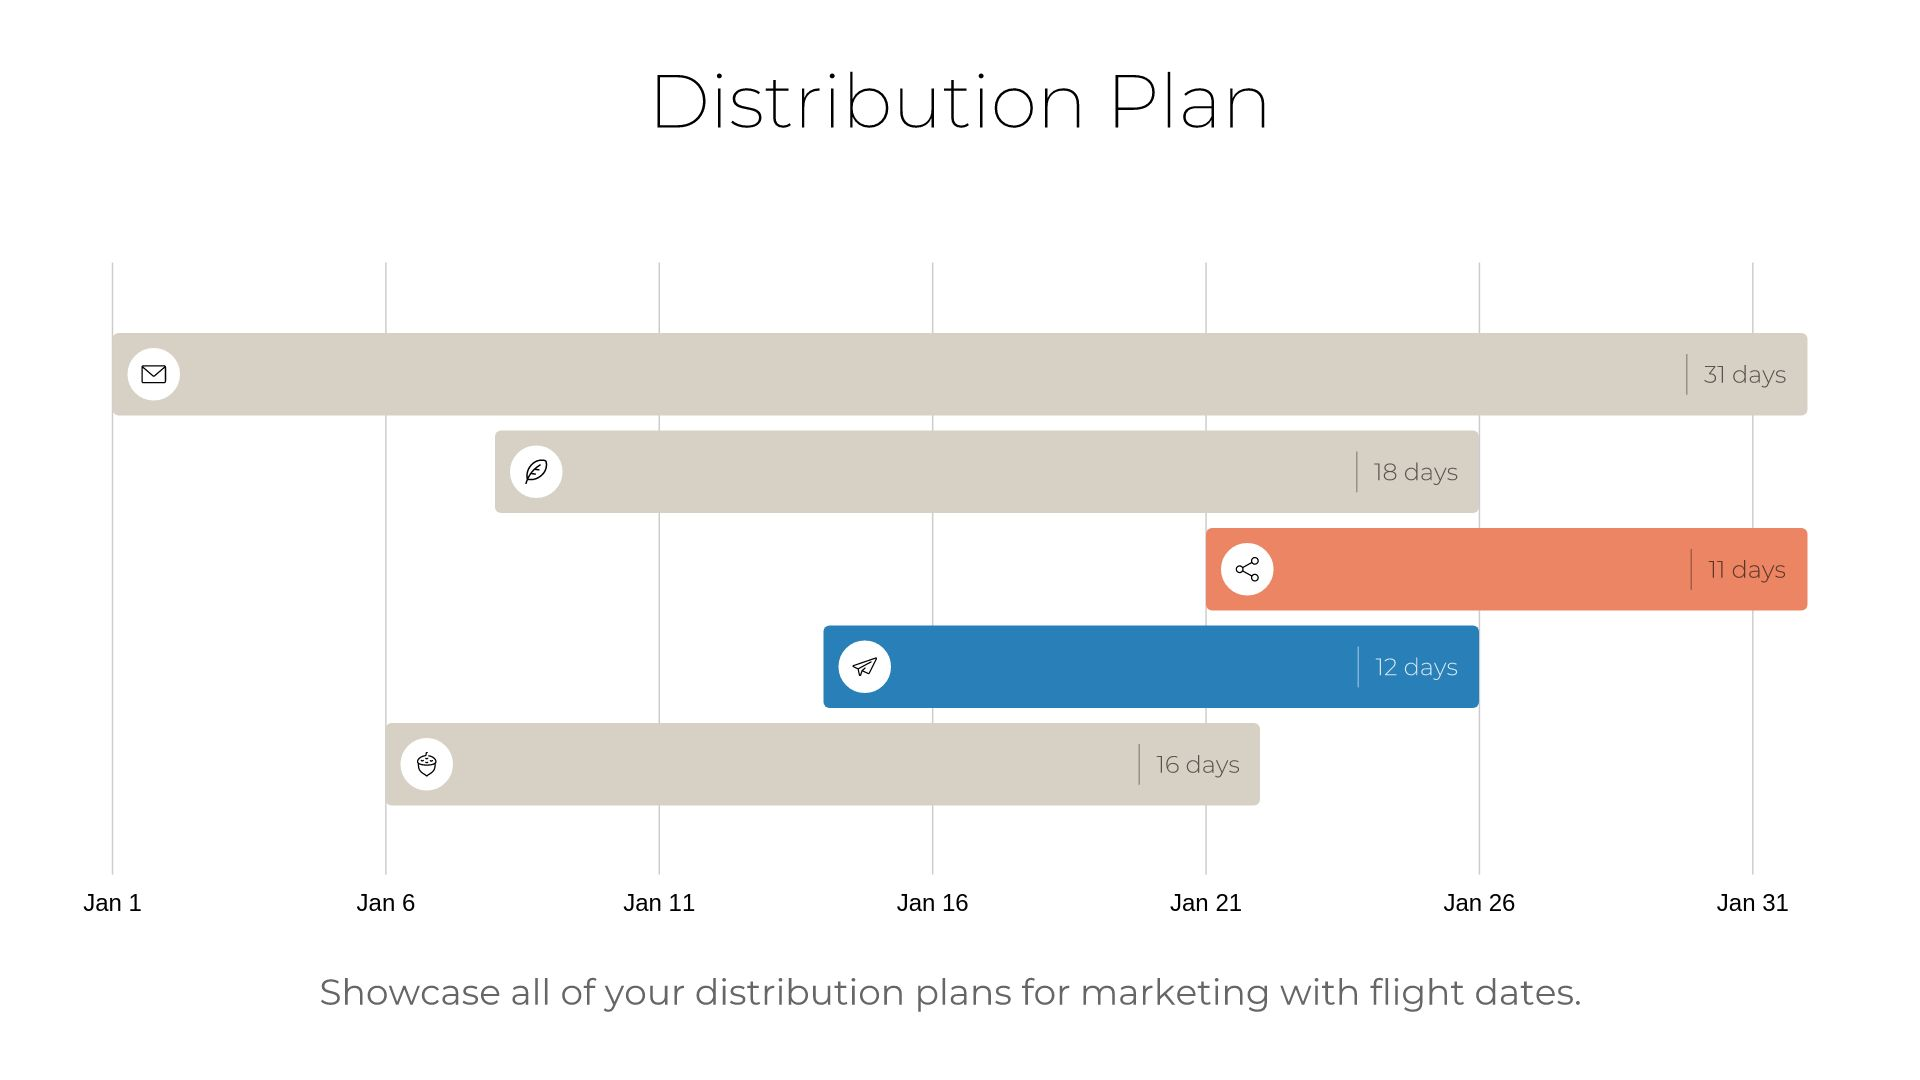 Distribution Plan